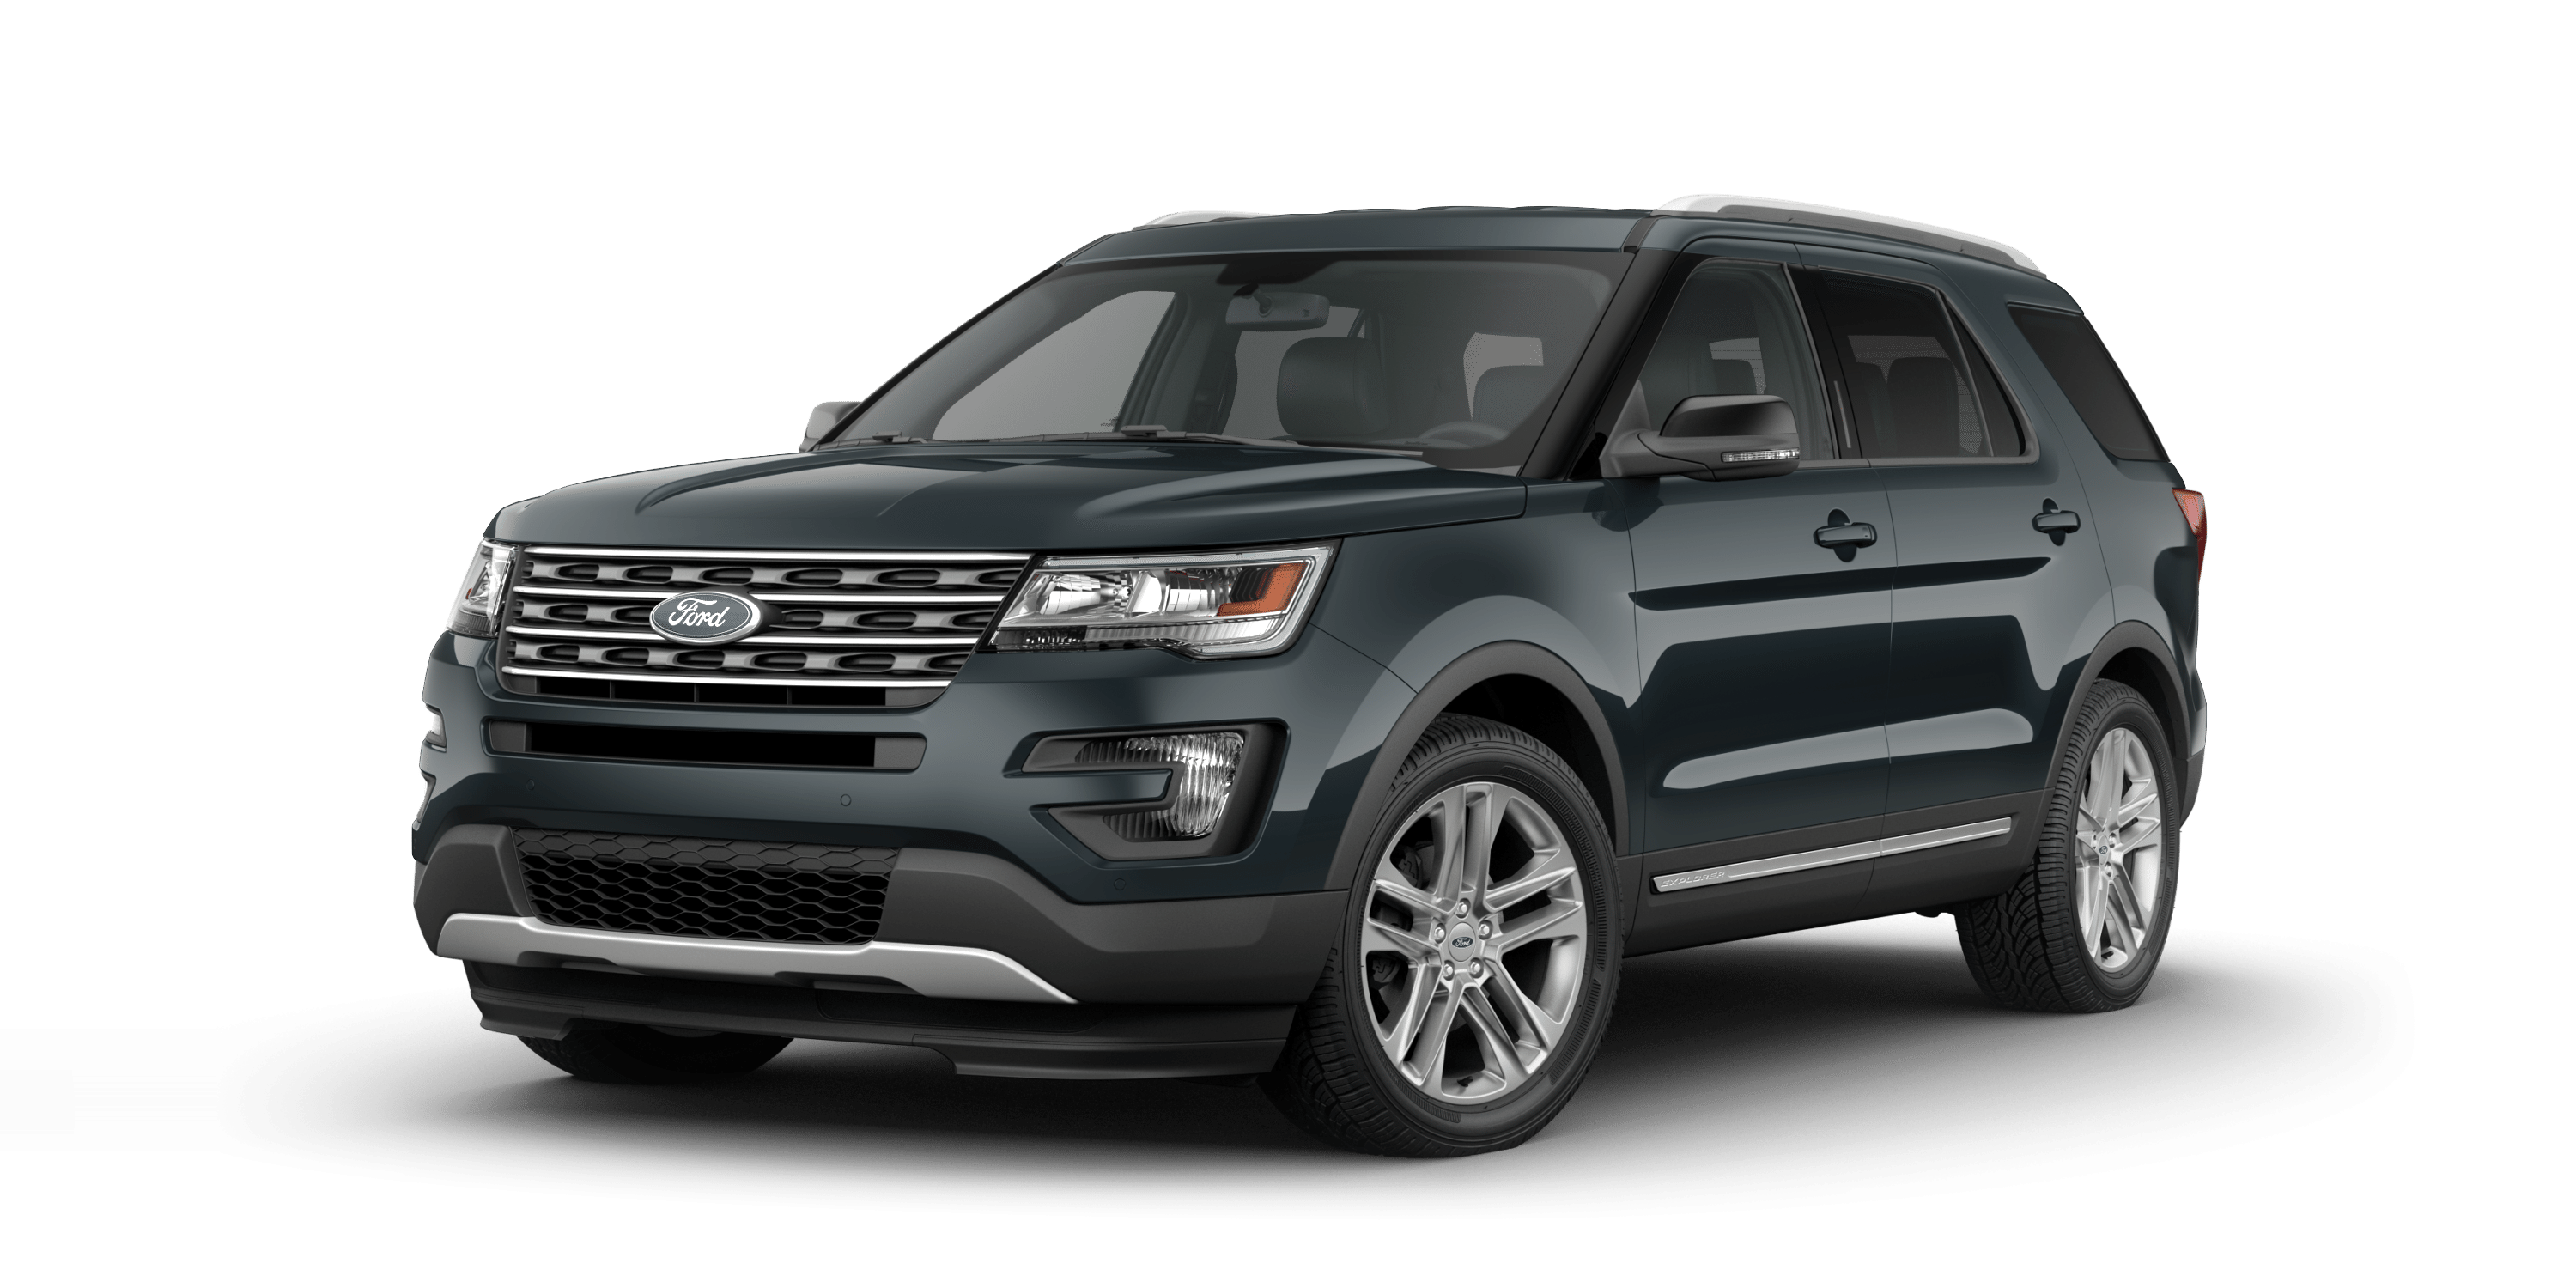 New 2017 Ford Explorer Vehicles for Sale in Souderton | Ciocca Ford